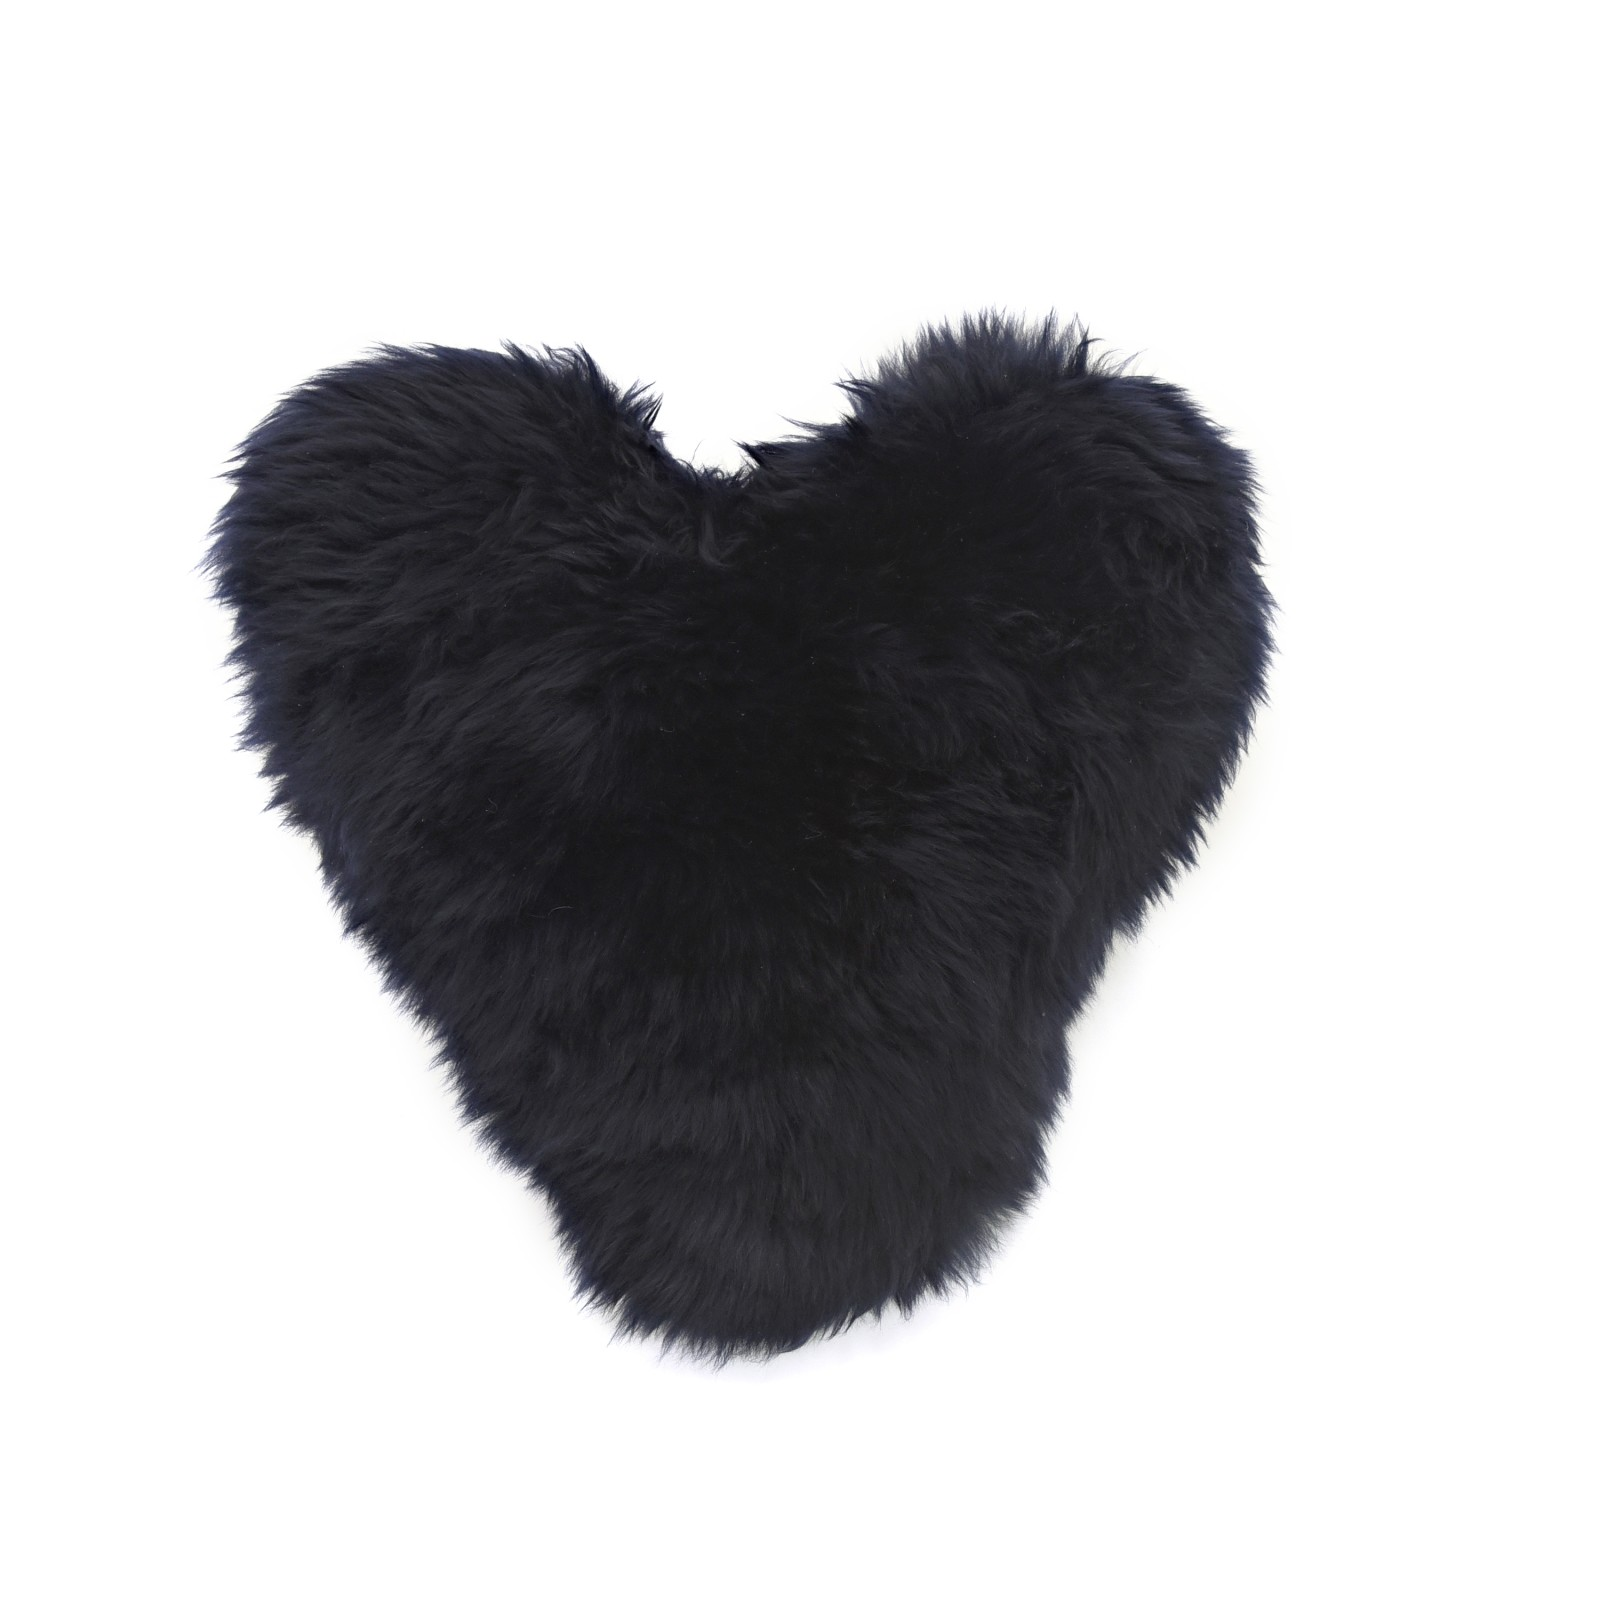 Calon Wlân - Sheepskin Heart Cushion in Navy